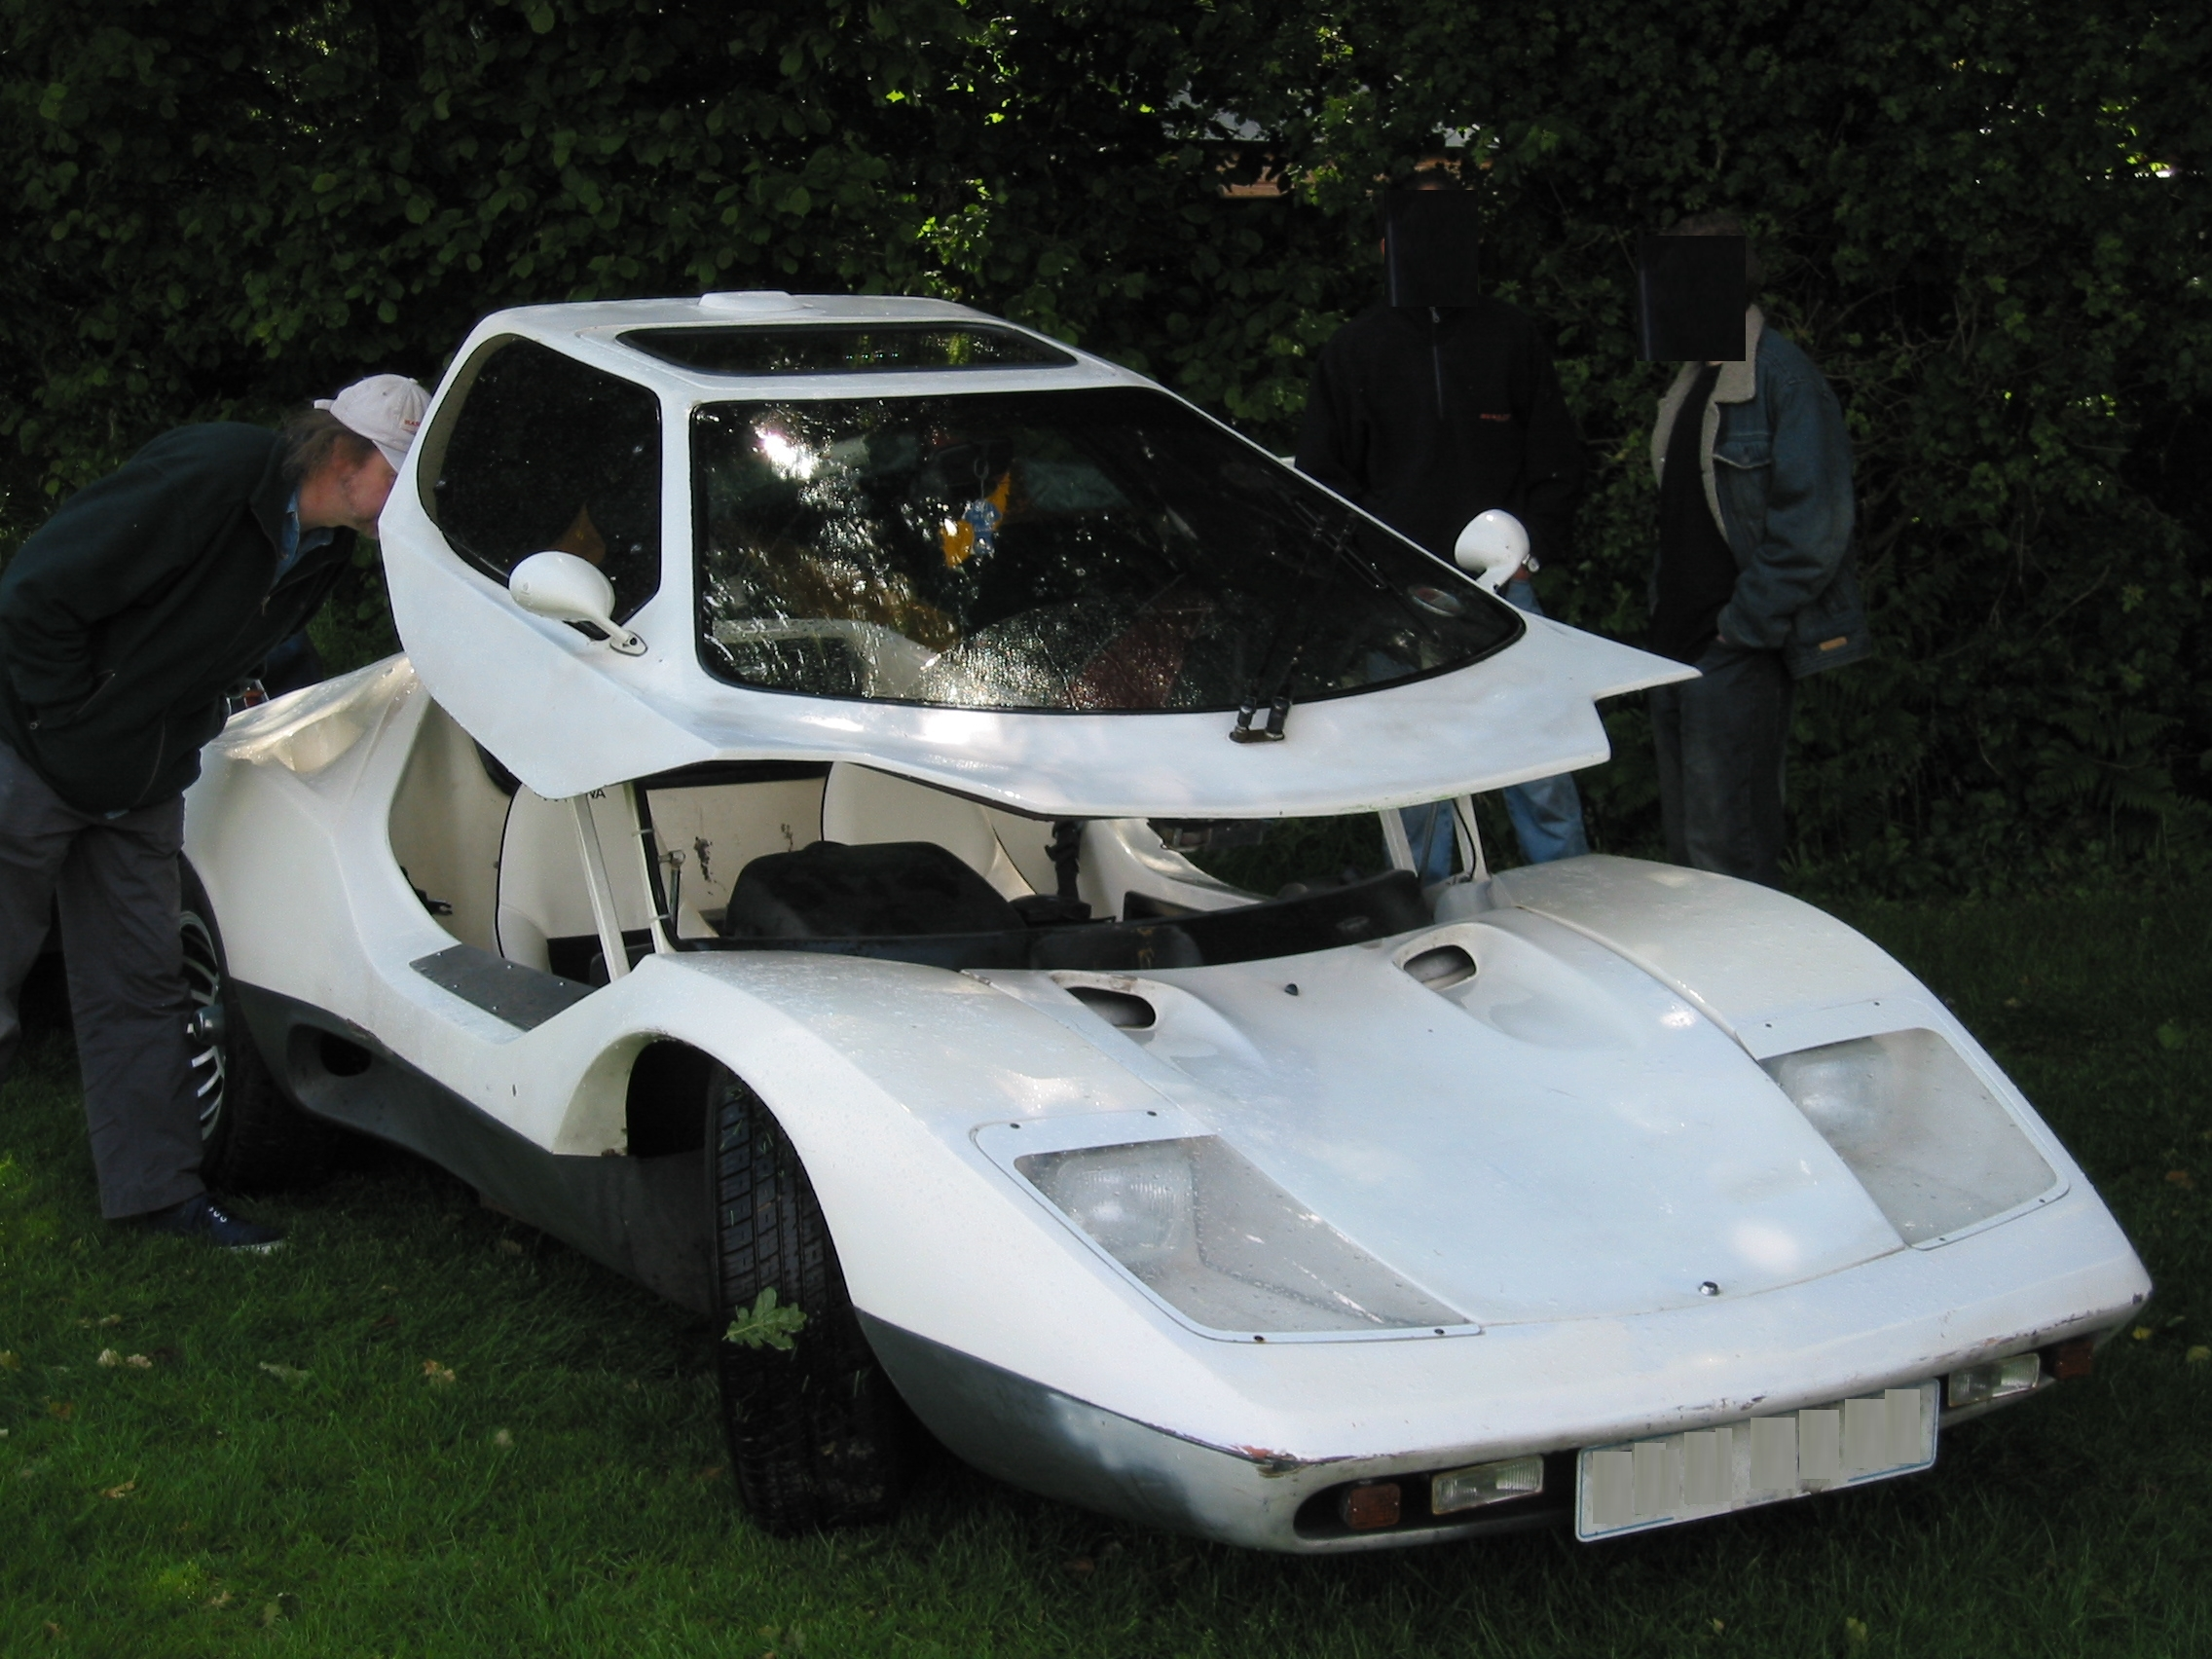 http://upload.wikimedia.org/wikipedia/commons/a/aa/Nova_car.JPG